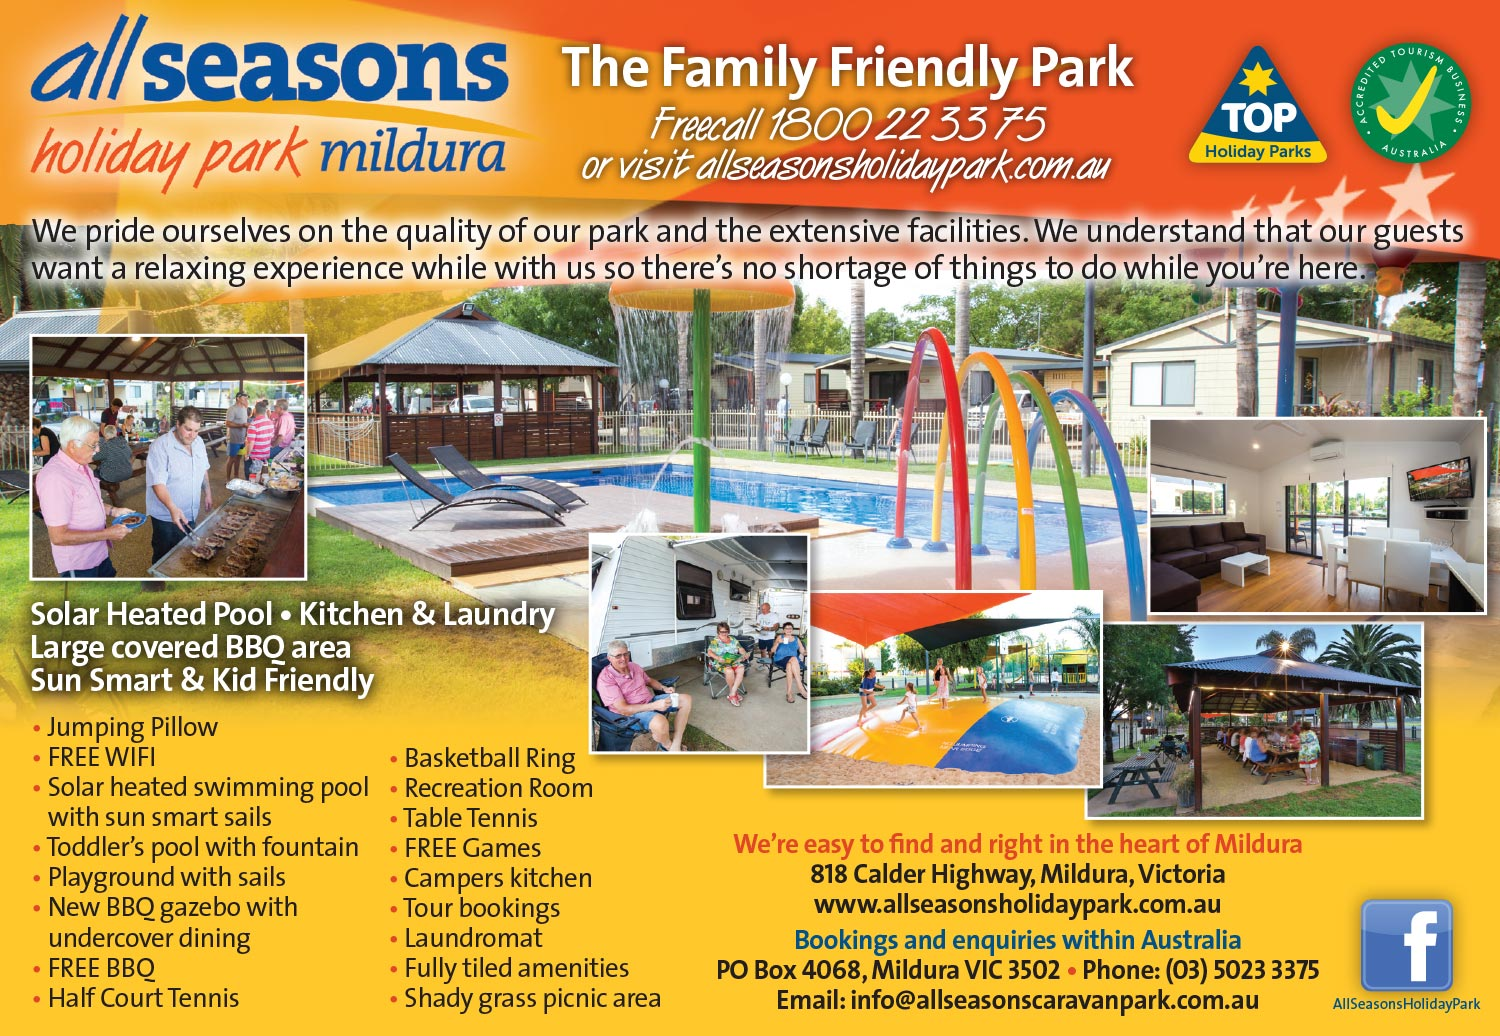 All Seasons Holiday Park ad